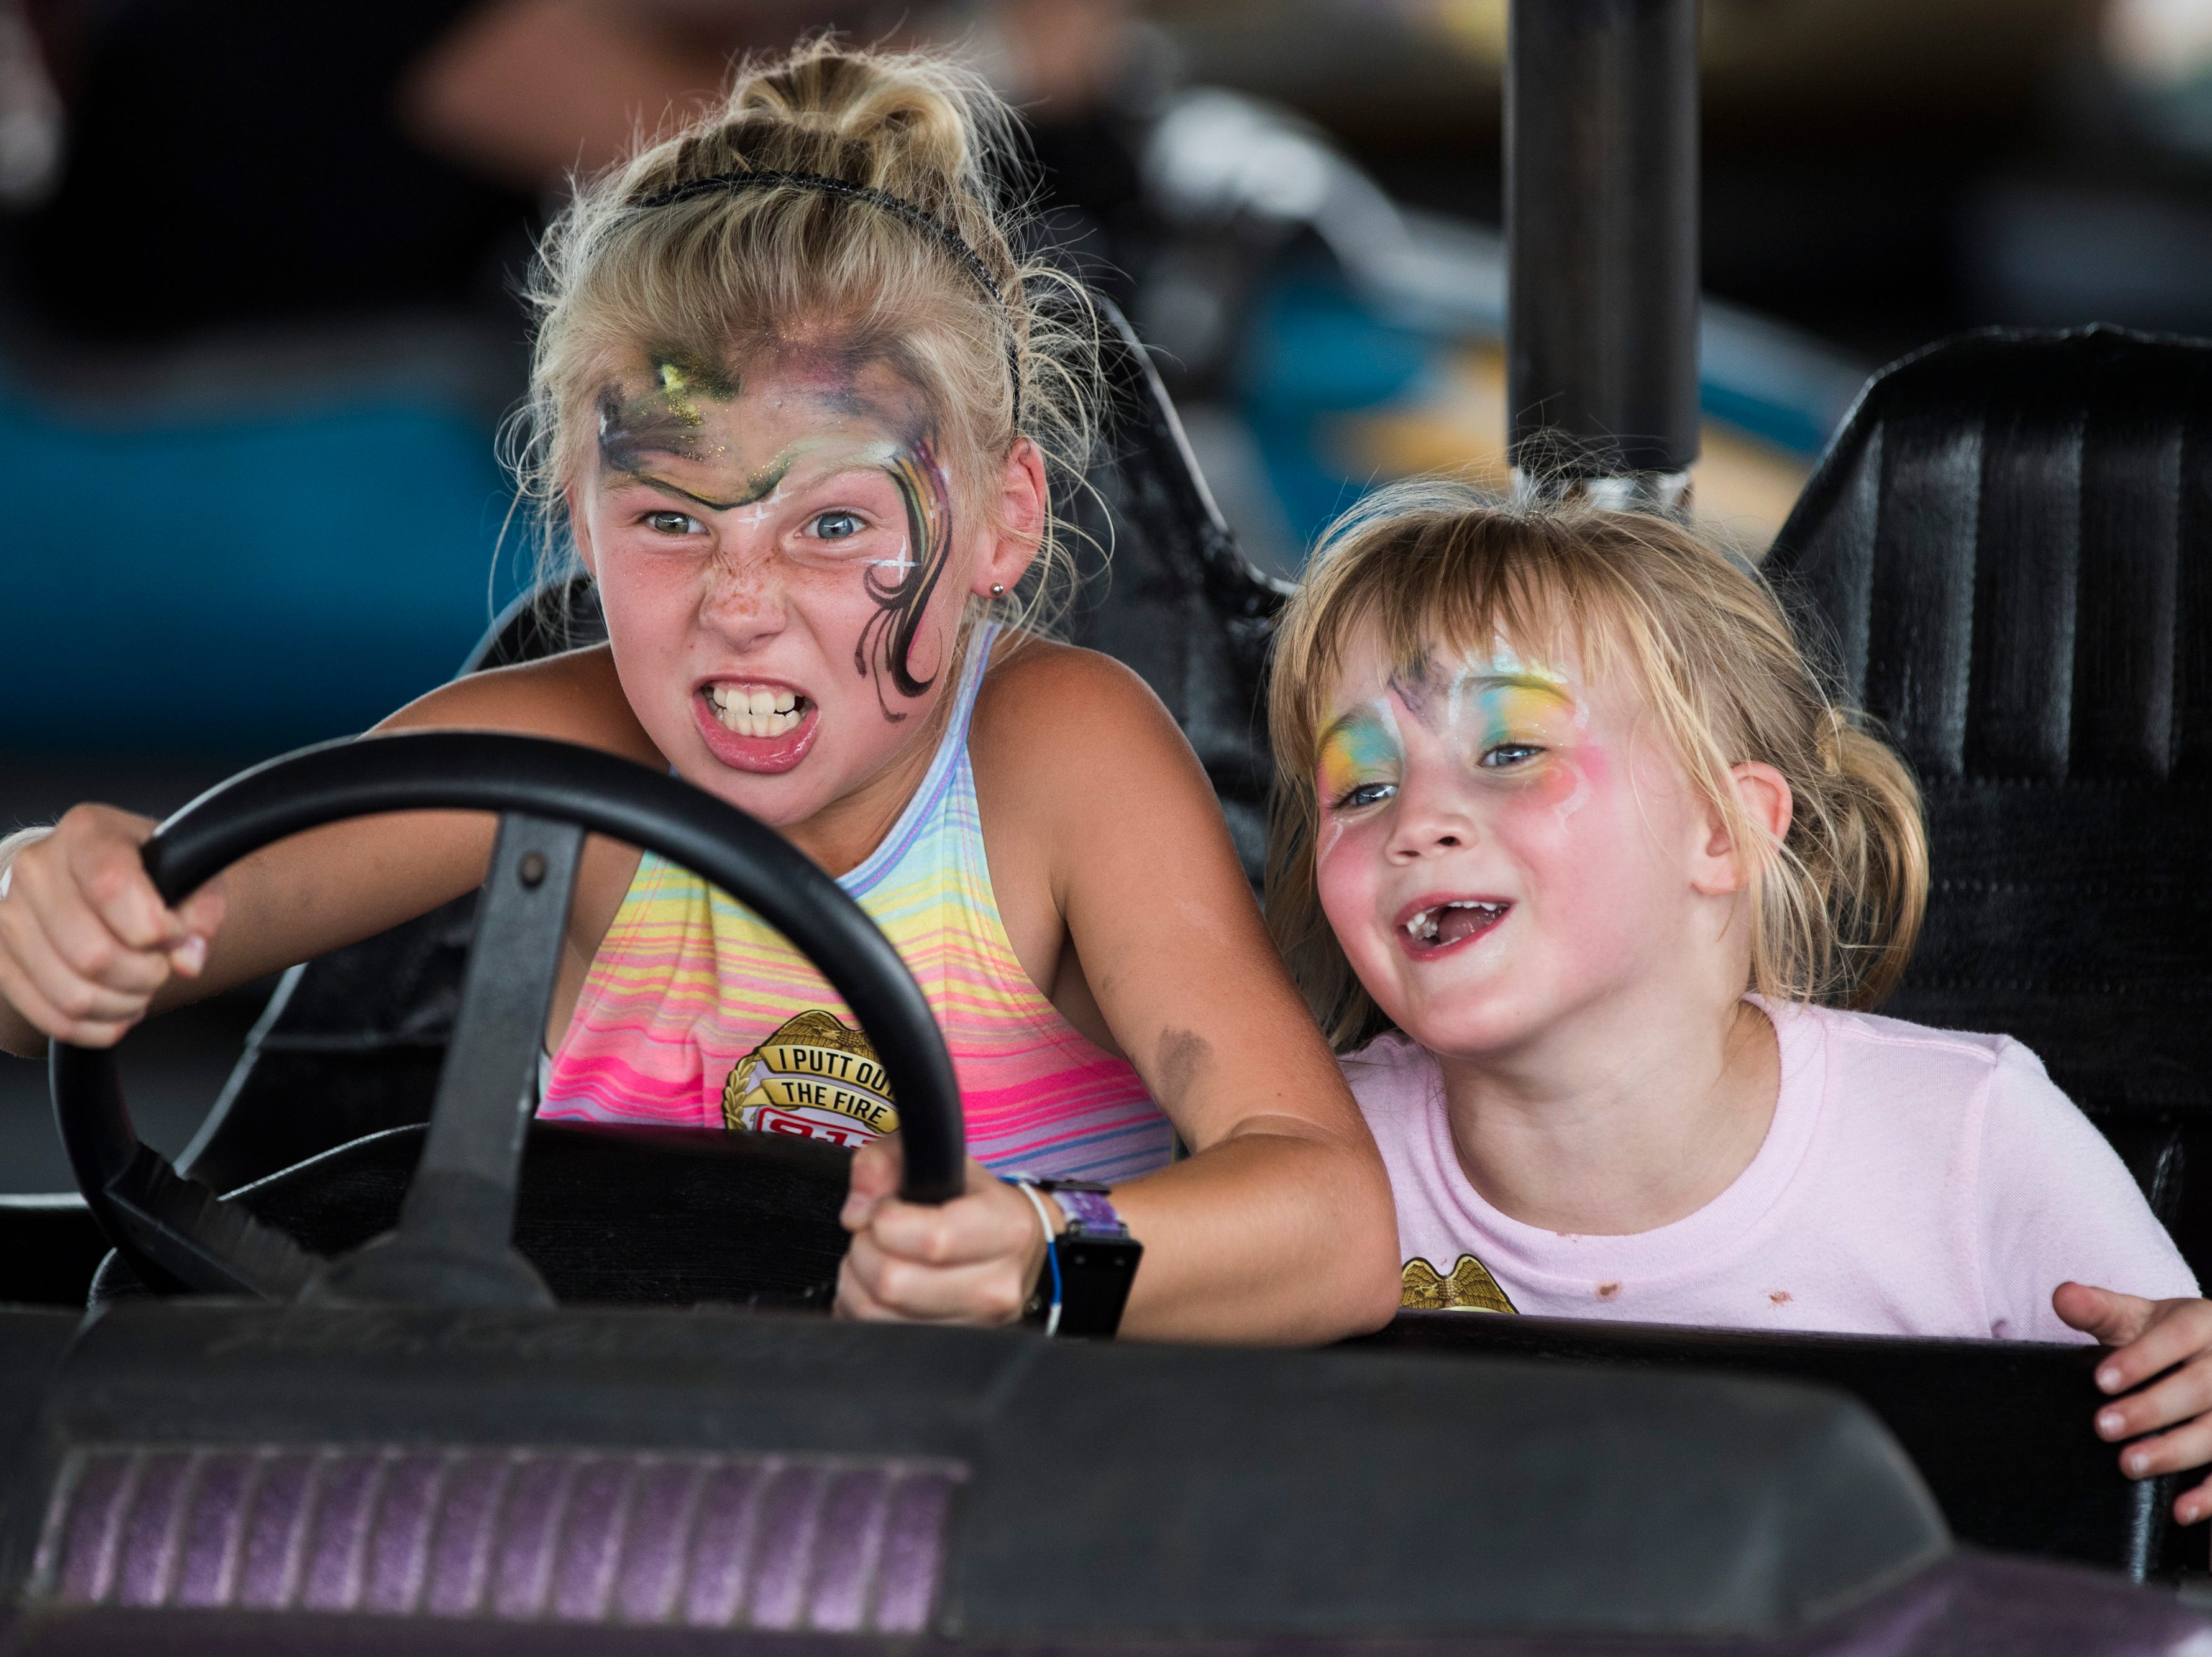 Riley James, 9, left, shows no fear as co-pilot Lilly Cash, 6, looks on during a ride in a bumper car at the Kentucky State Fair on Monday. Aug. 20, 2018